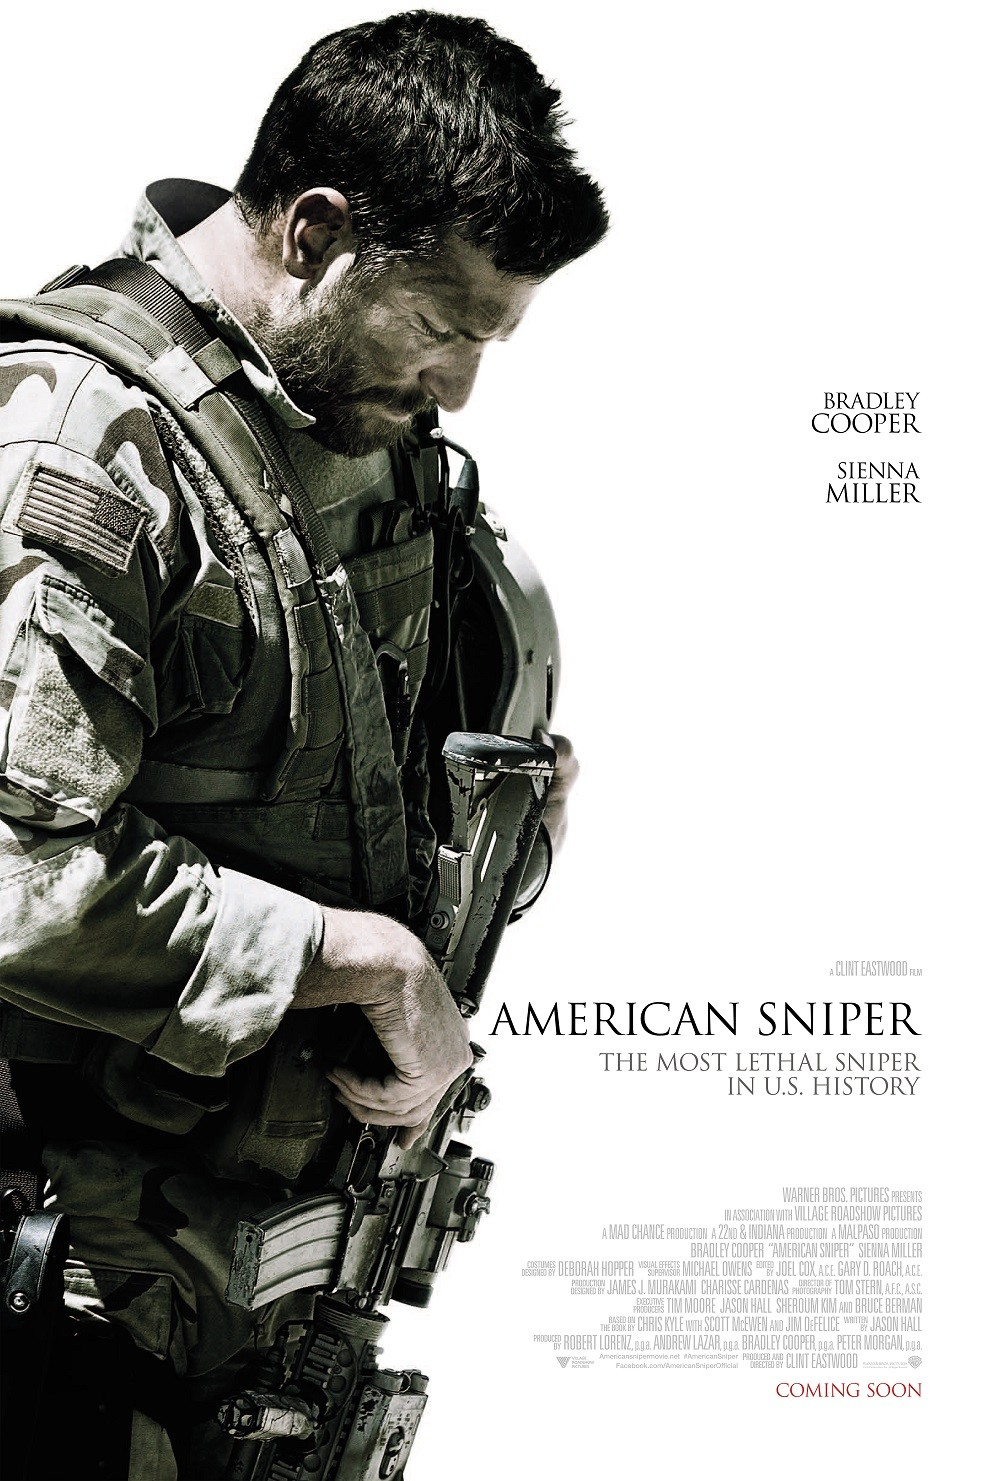 American Sniper-Official Poster Banner PROMO XLG-16OUTUBRO2014